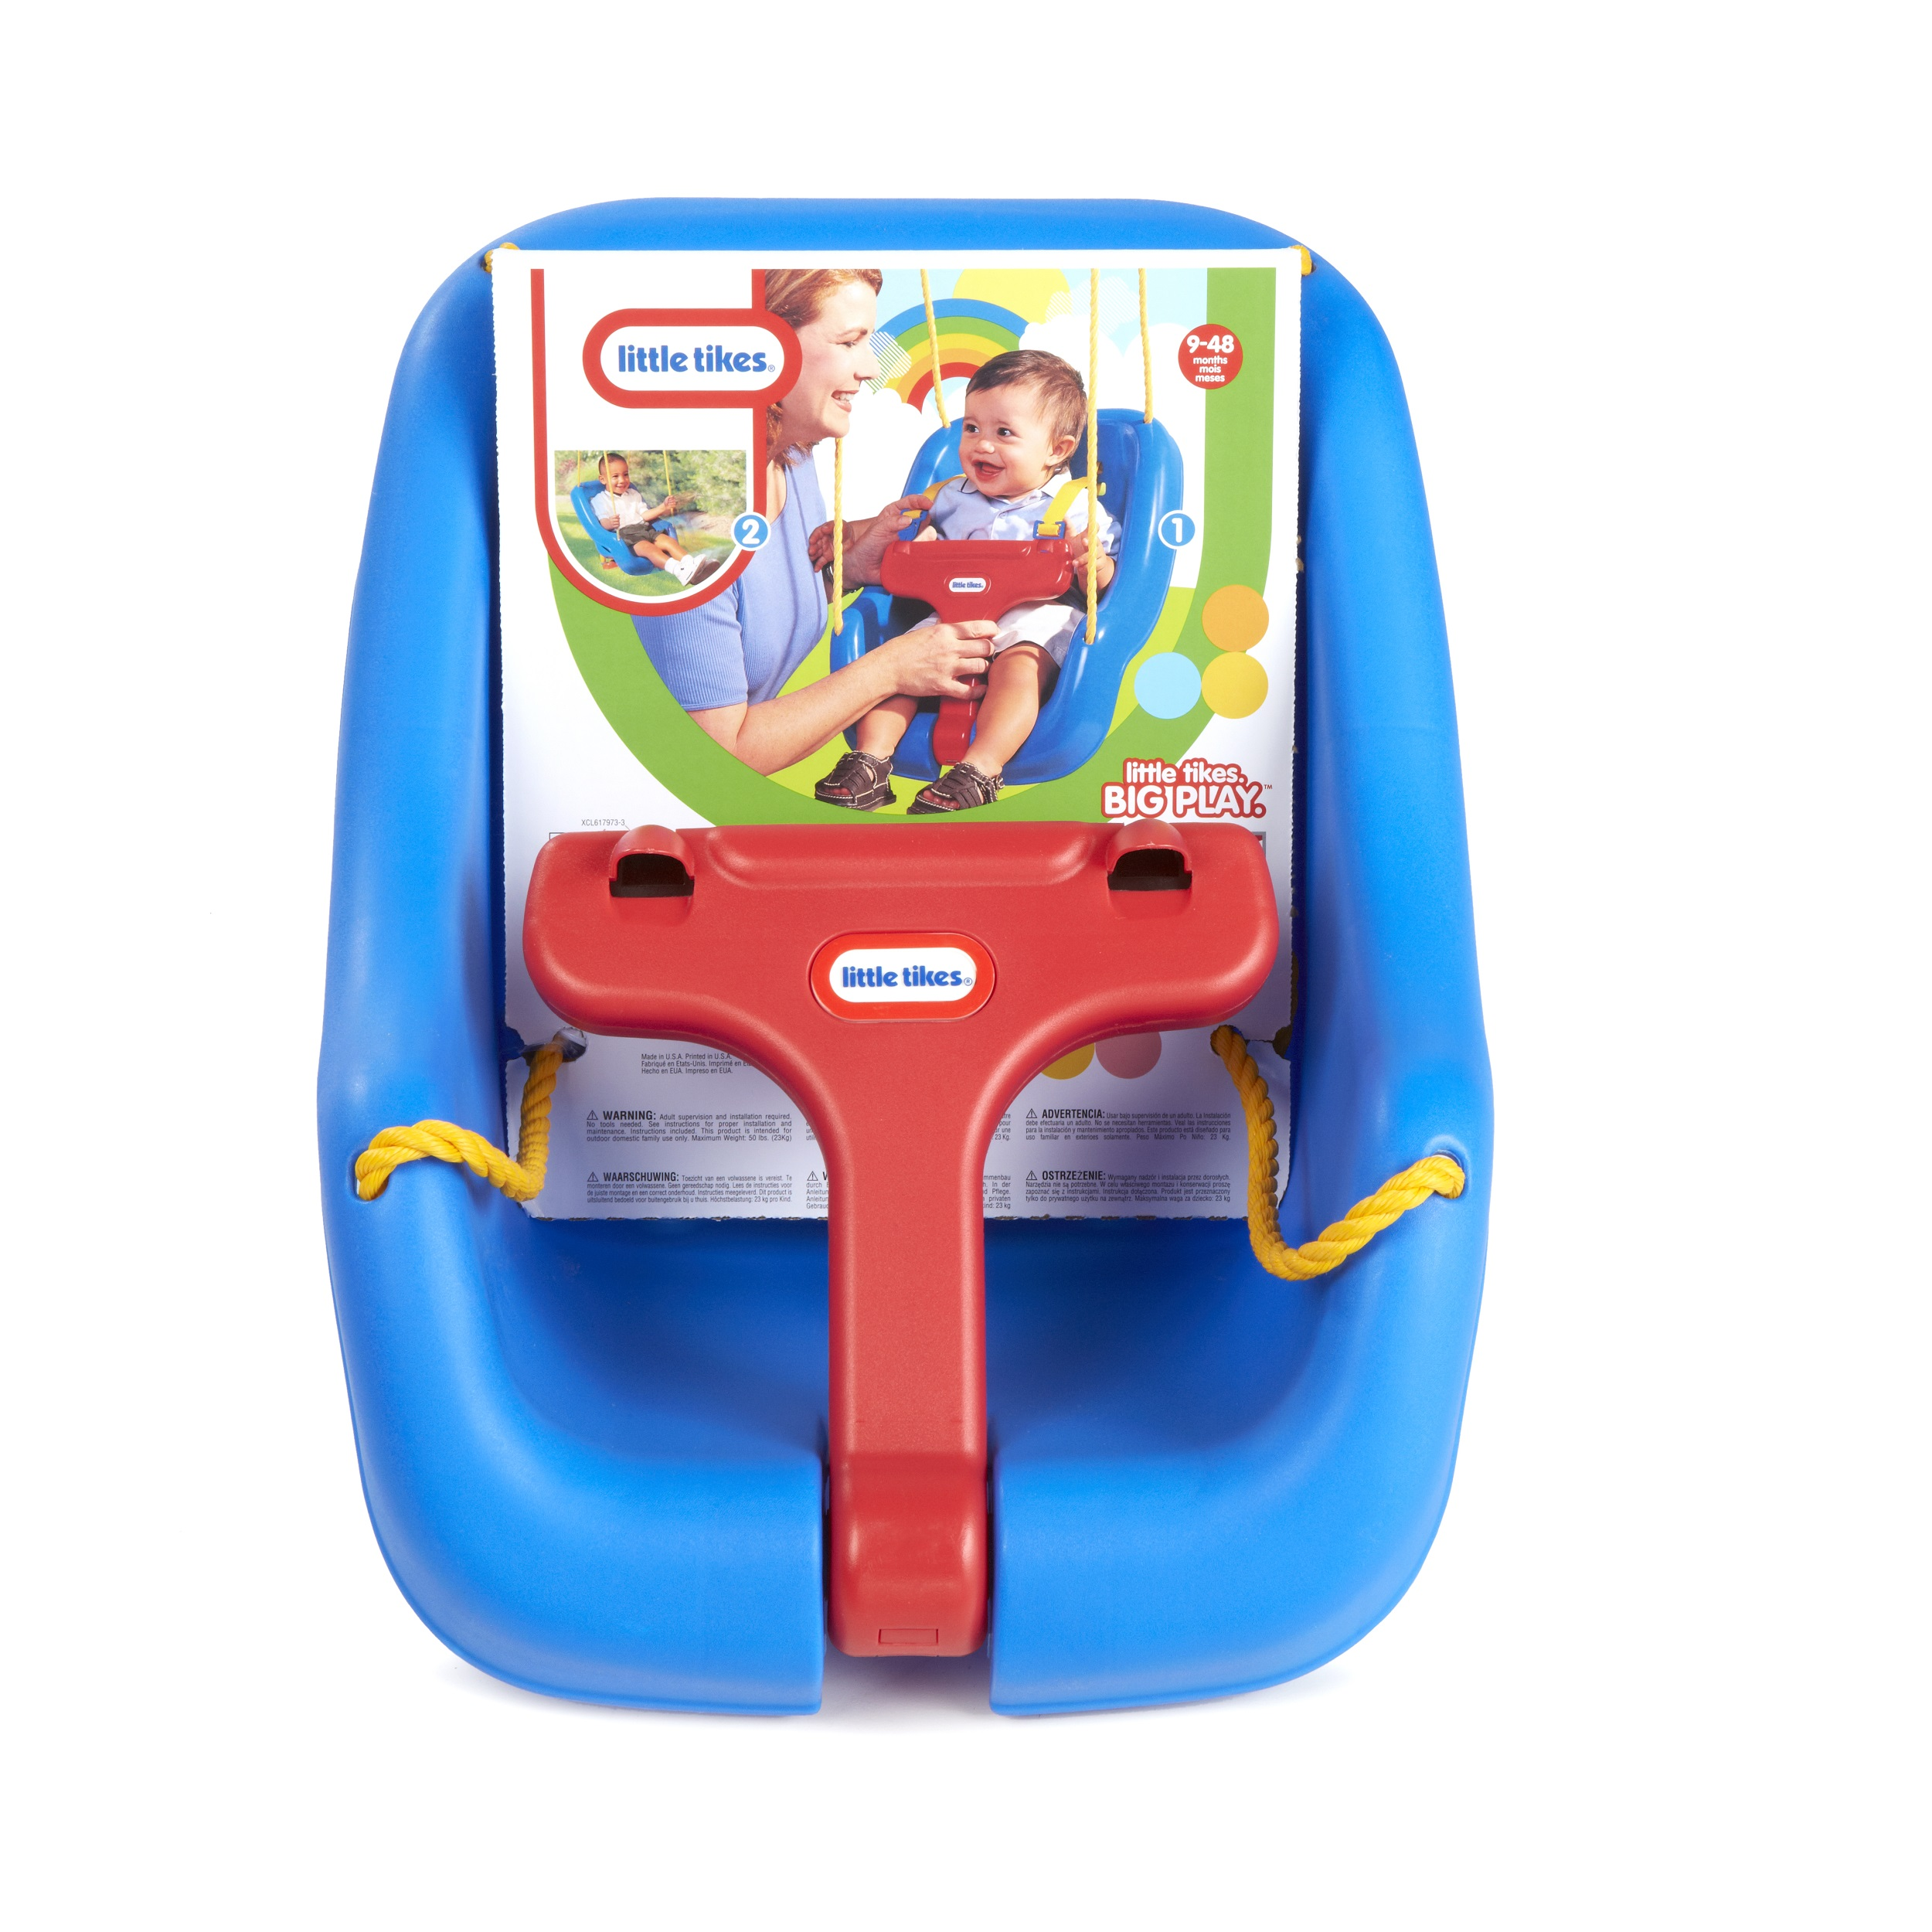 Little Tikes 2-In-1 Snug And Secure Swing - Blue  sc 1 st  Walmart & Little Tikes 2-In-1 Snug And Secure Swing - Blue - Walmart.com